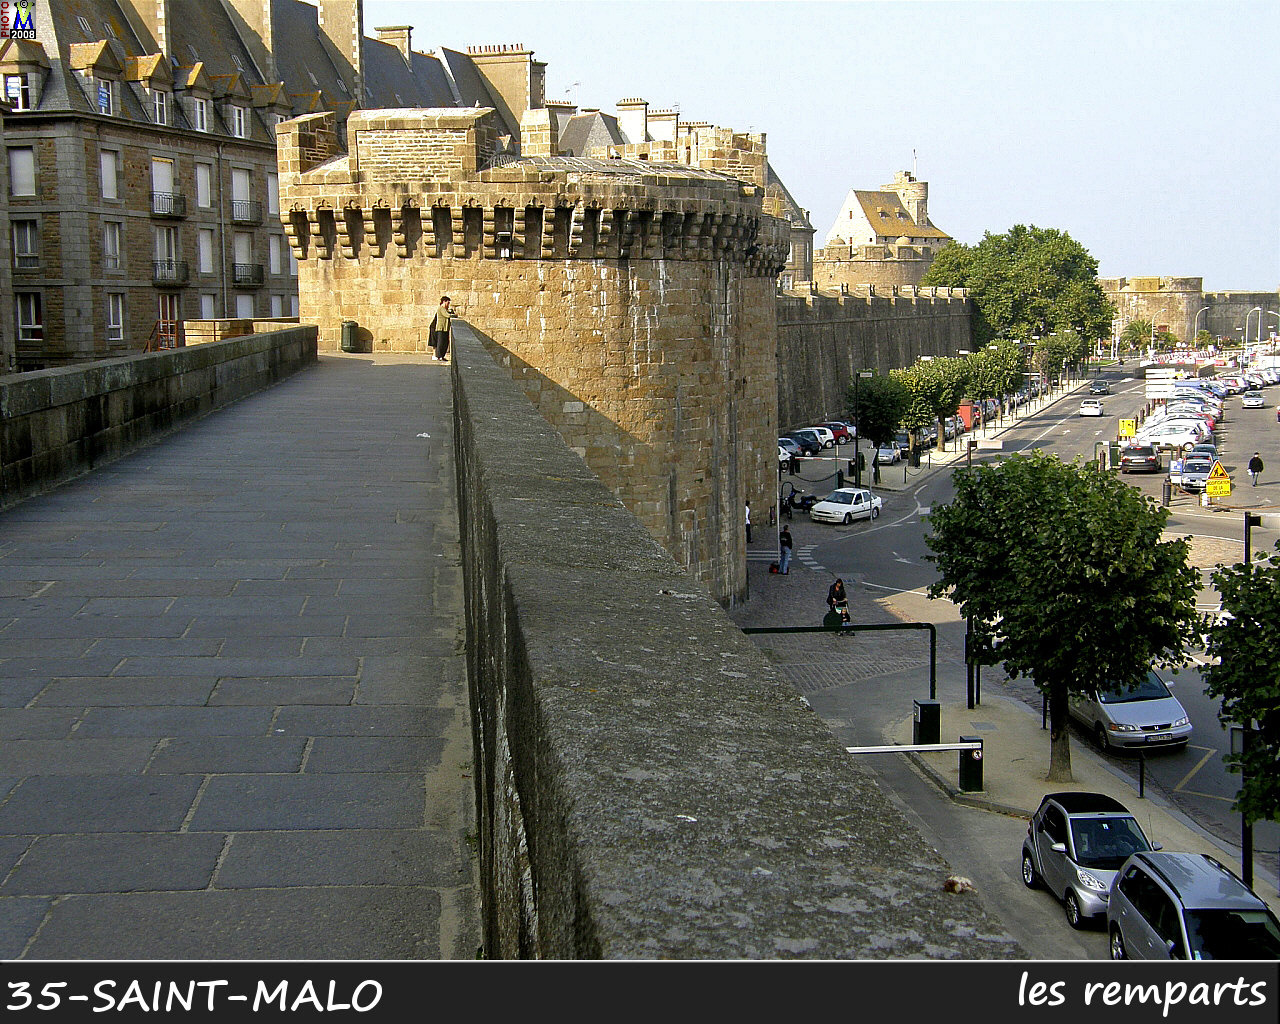 35StMALO_remparts_132.jpg